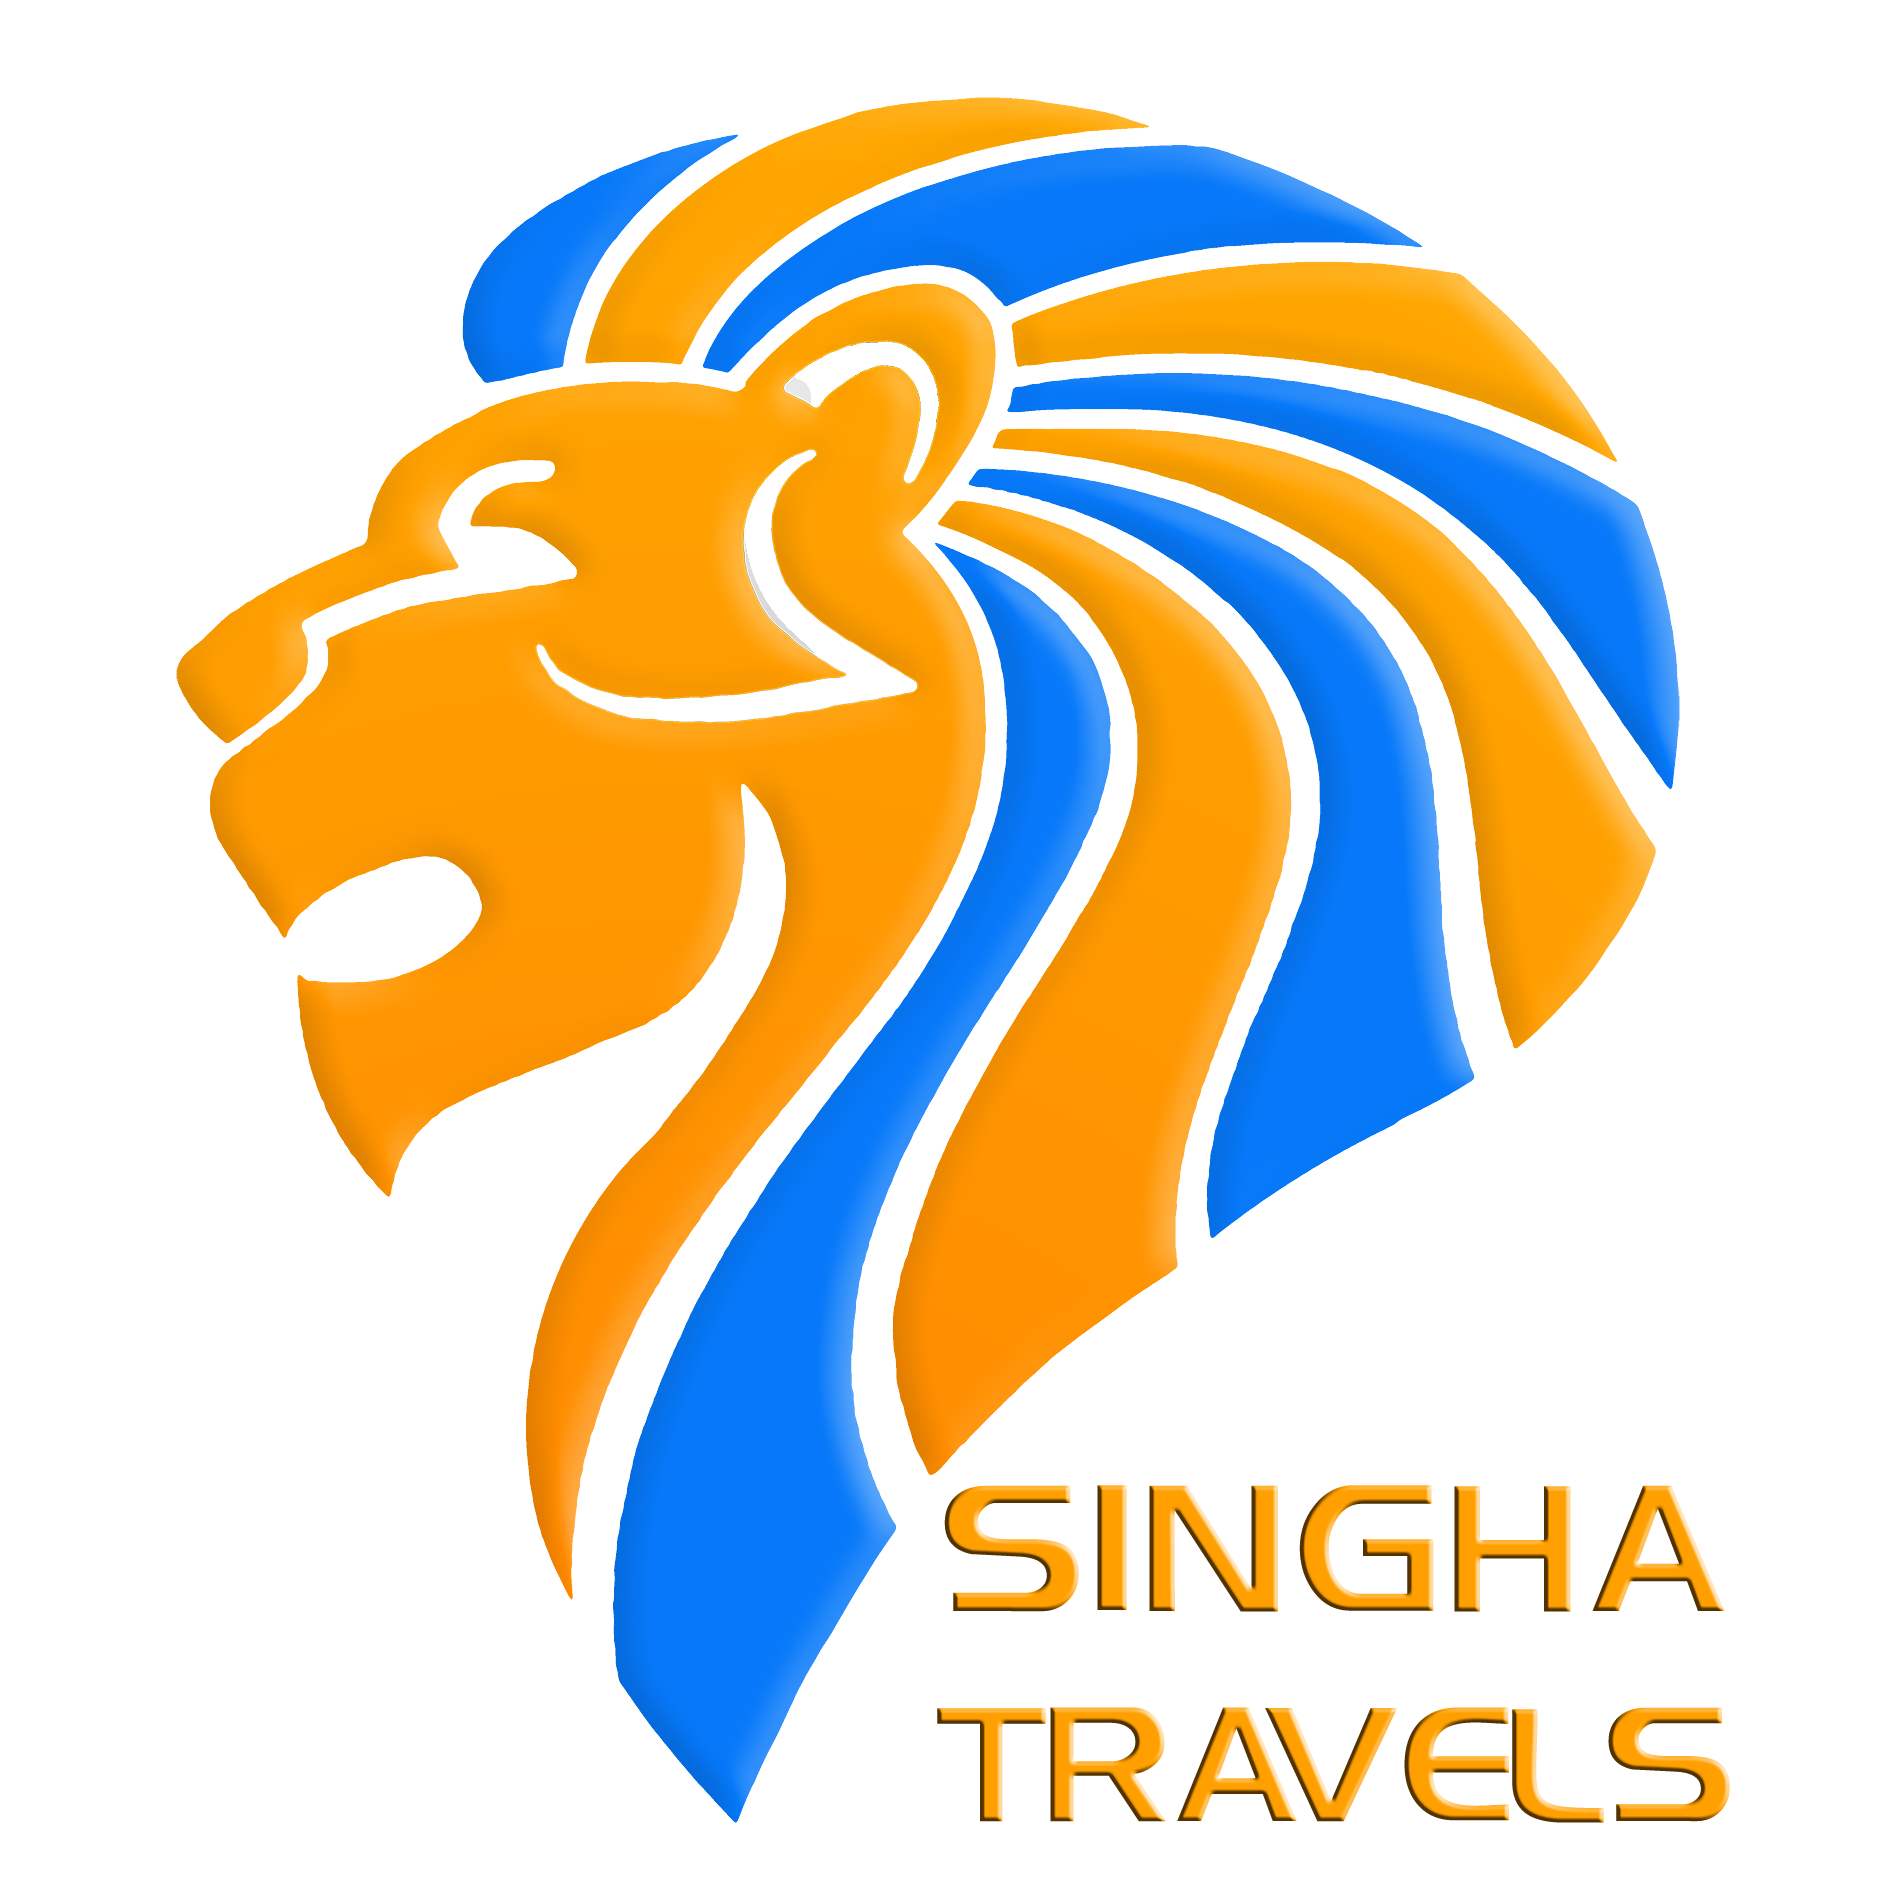 Singha Travels